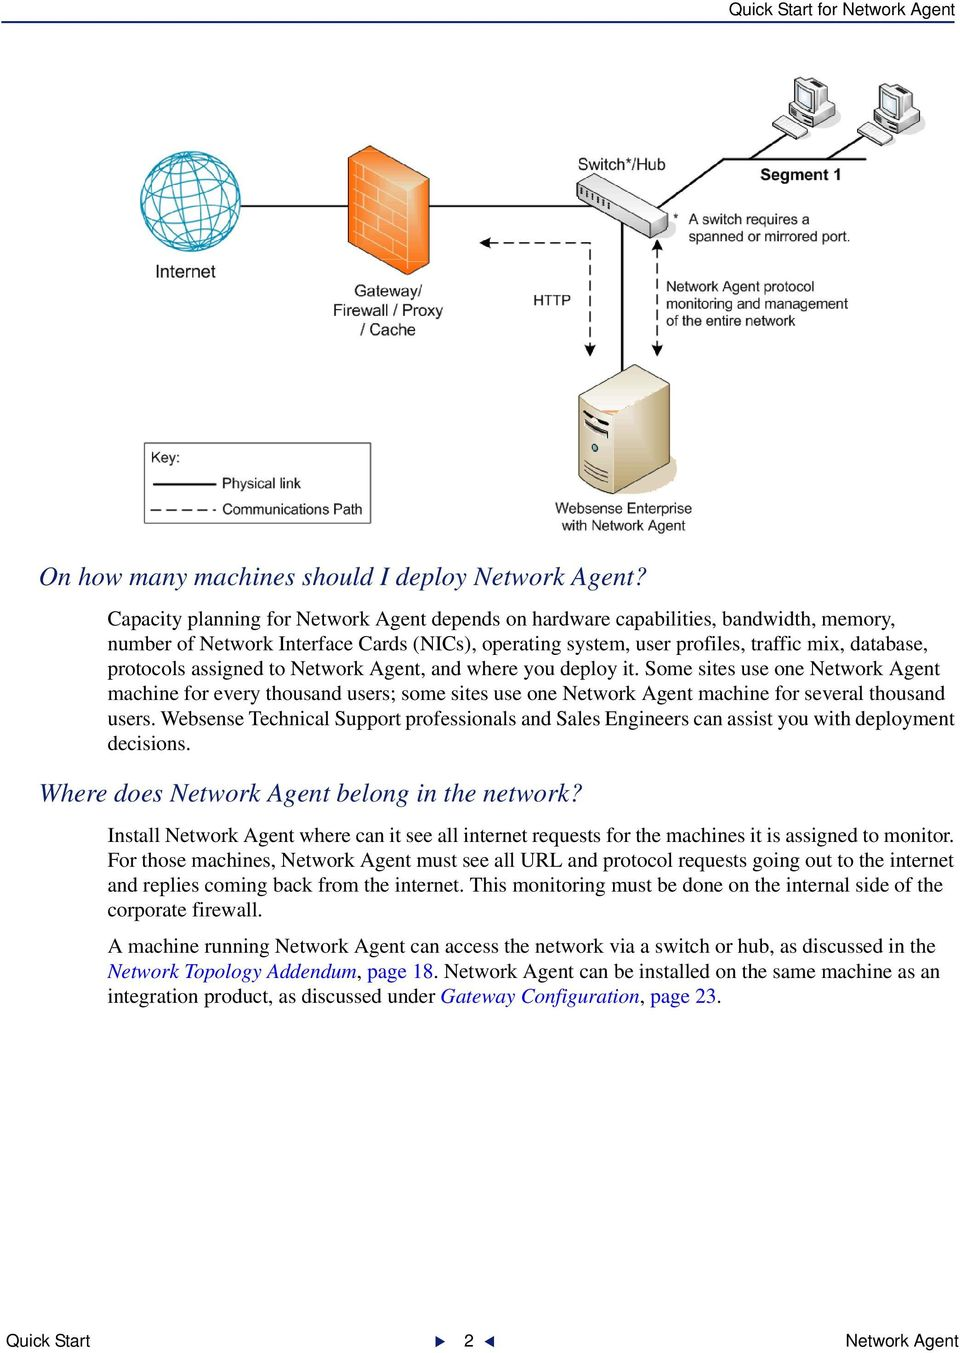 assigned to Network Agent, and where you deploy it. Some sites use one Network Agent machine for every thousand users; some sites use one Network Agent machine for several thousand users.